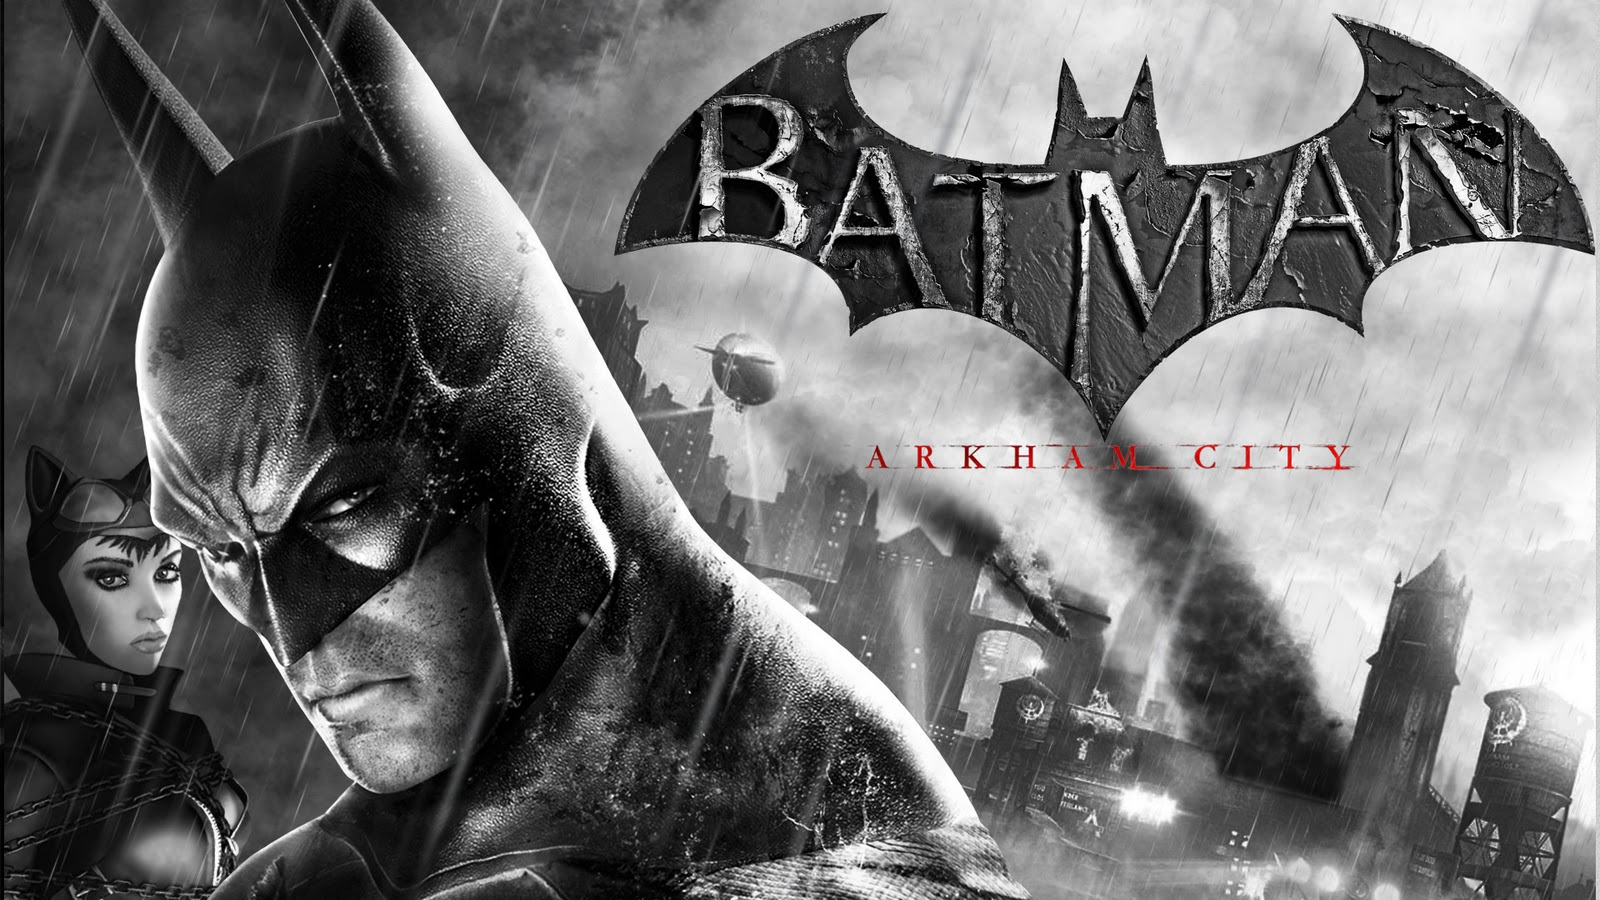 Wallpaper Batman Arkham City Download Wallpaper DaWallpaperz 1600x900